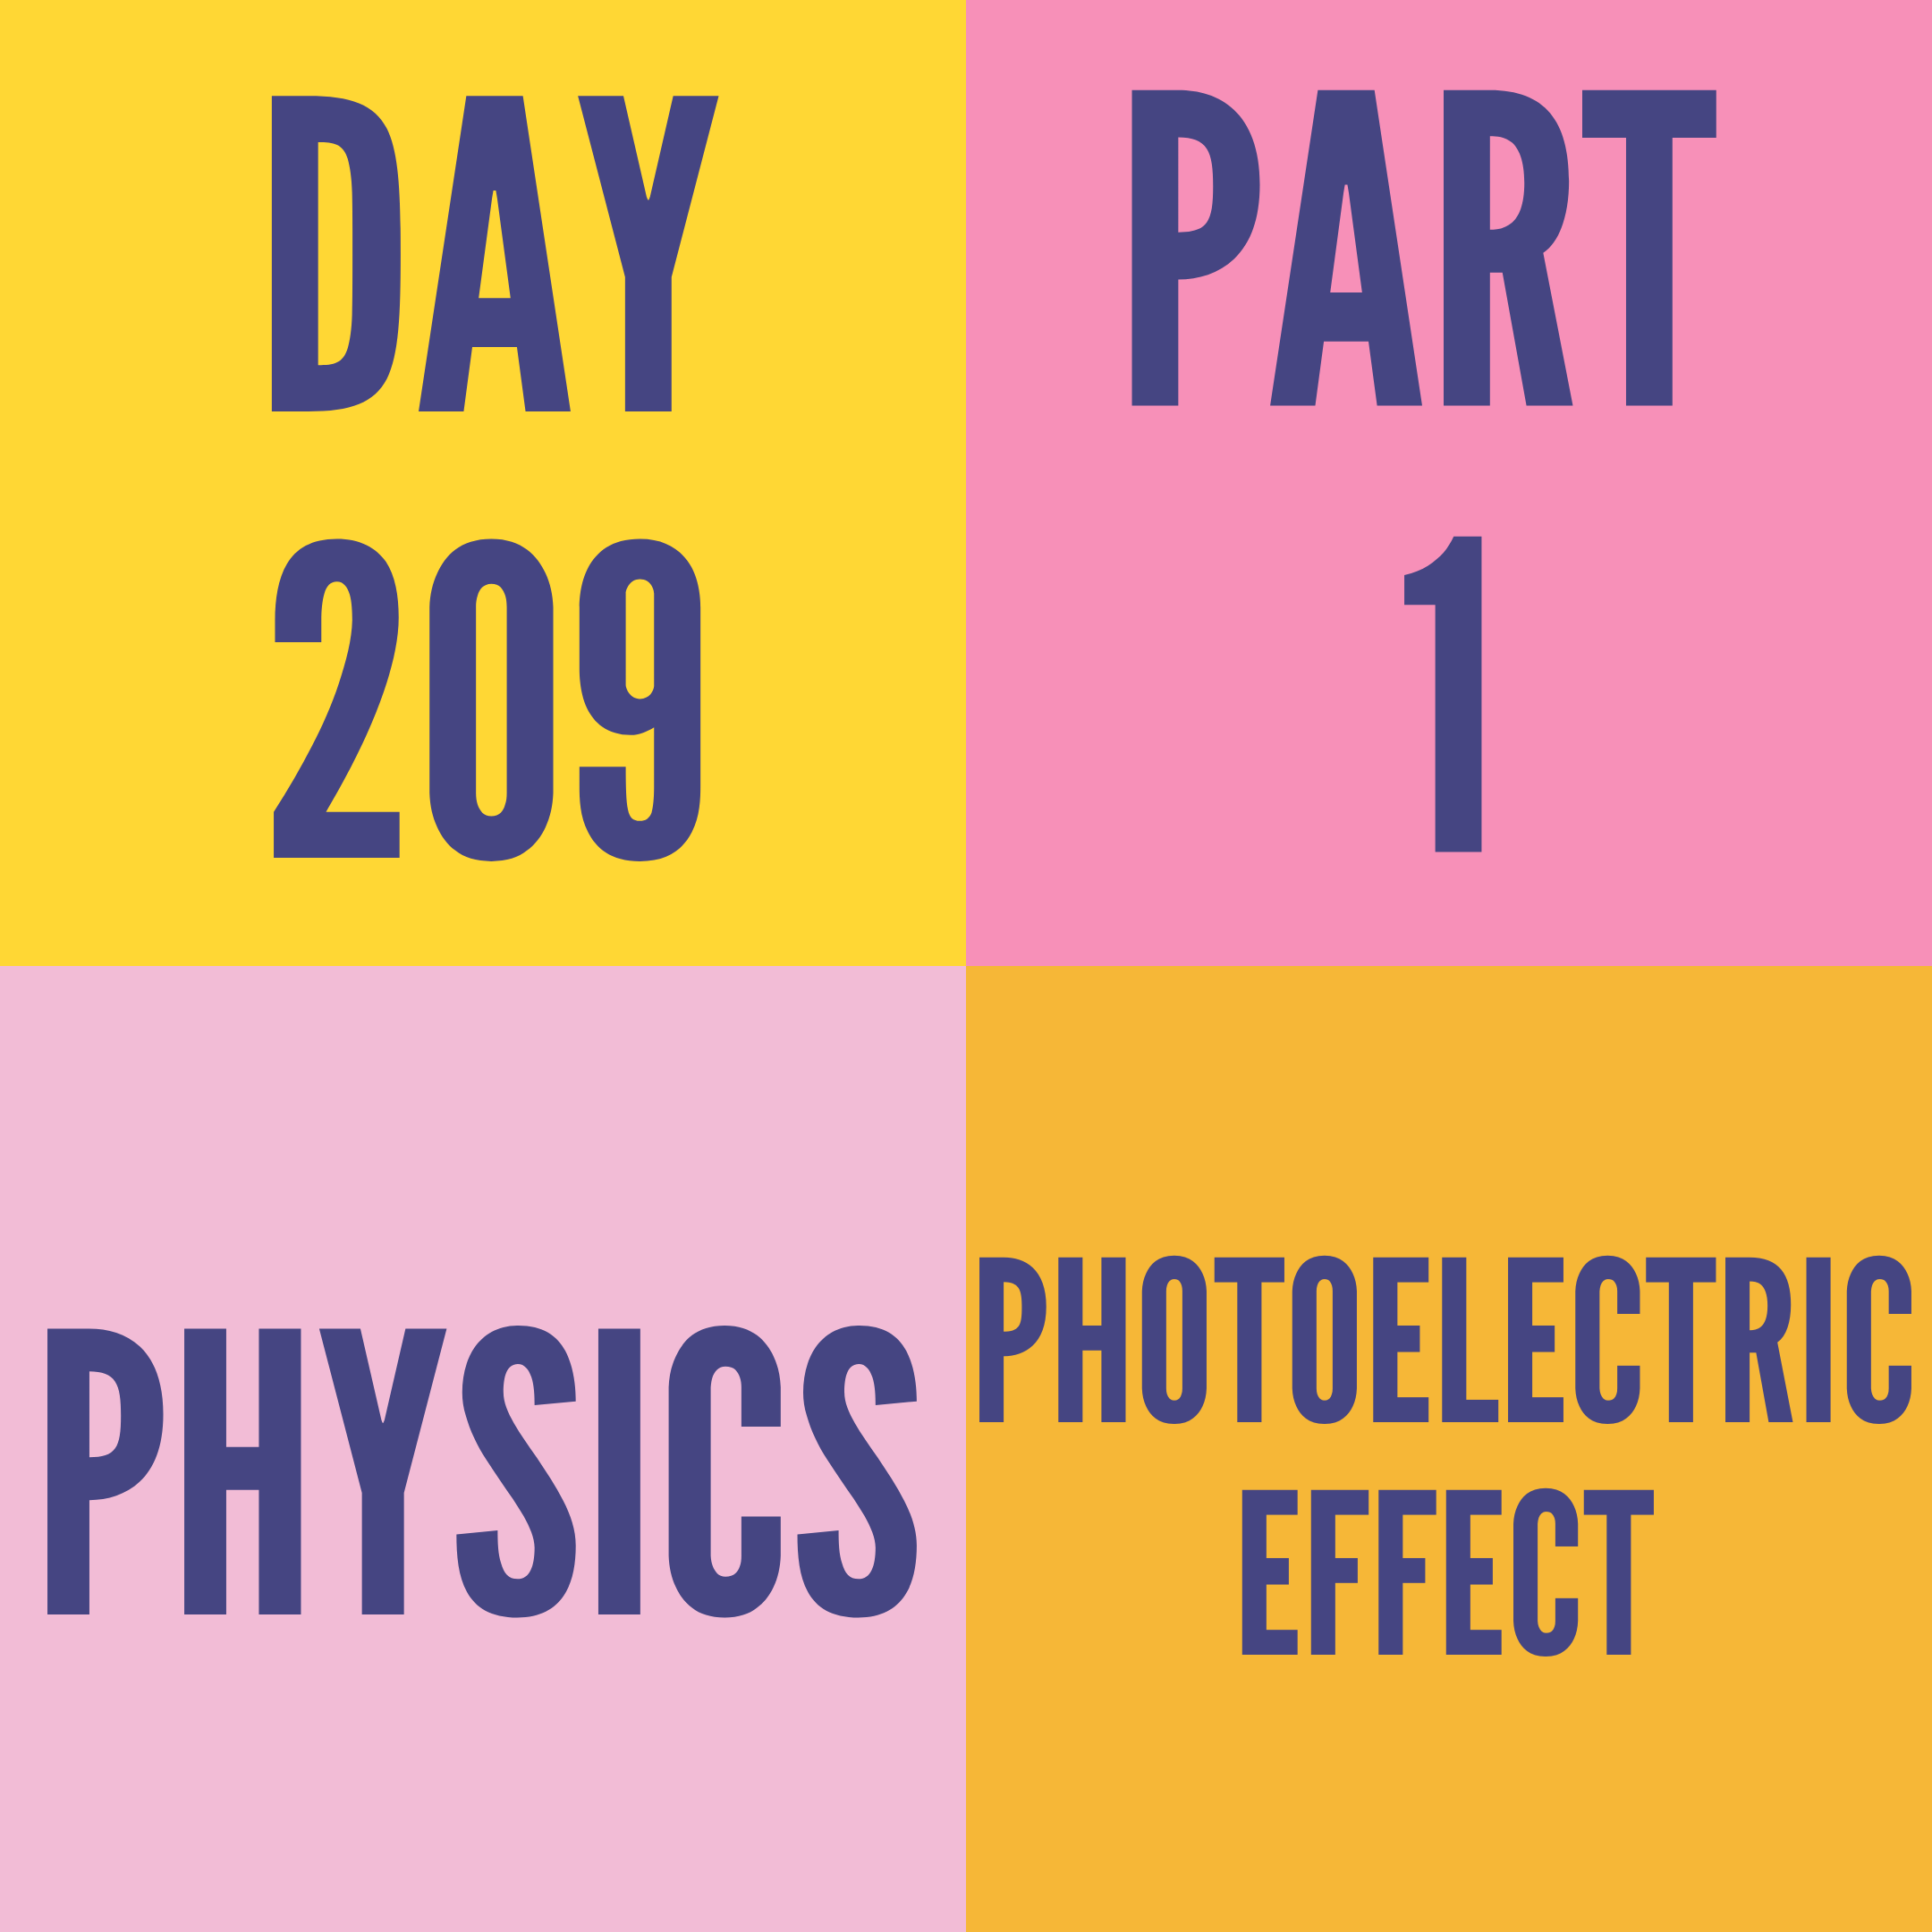 DAY-209 PART-1 PHOTOELECTRIC EFFECT